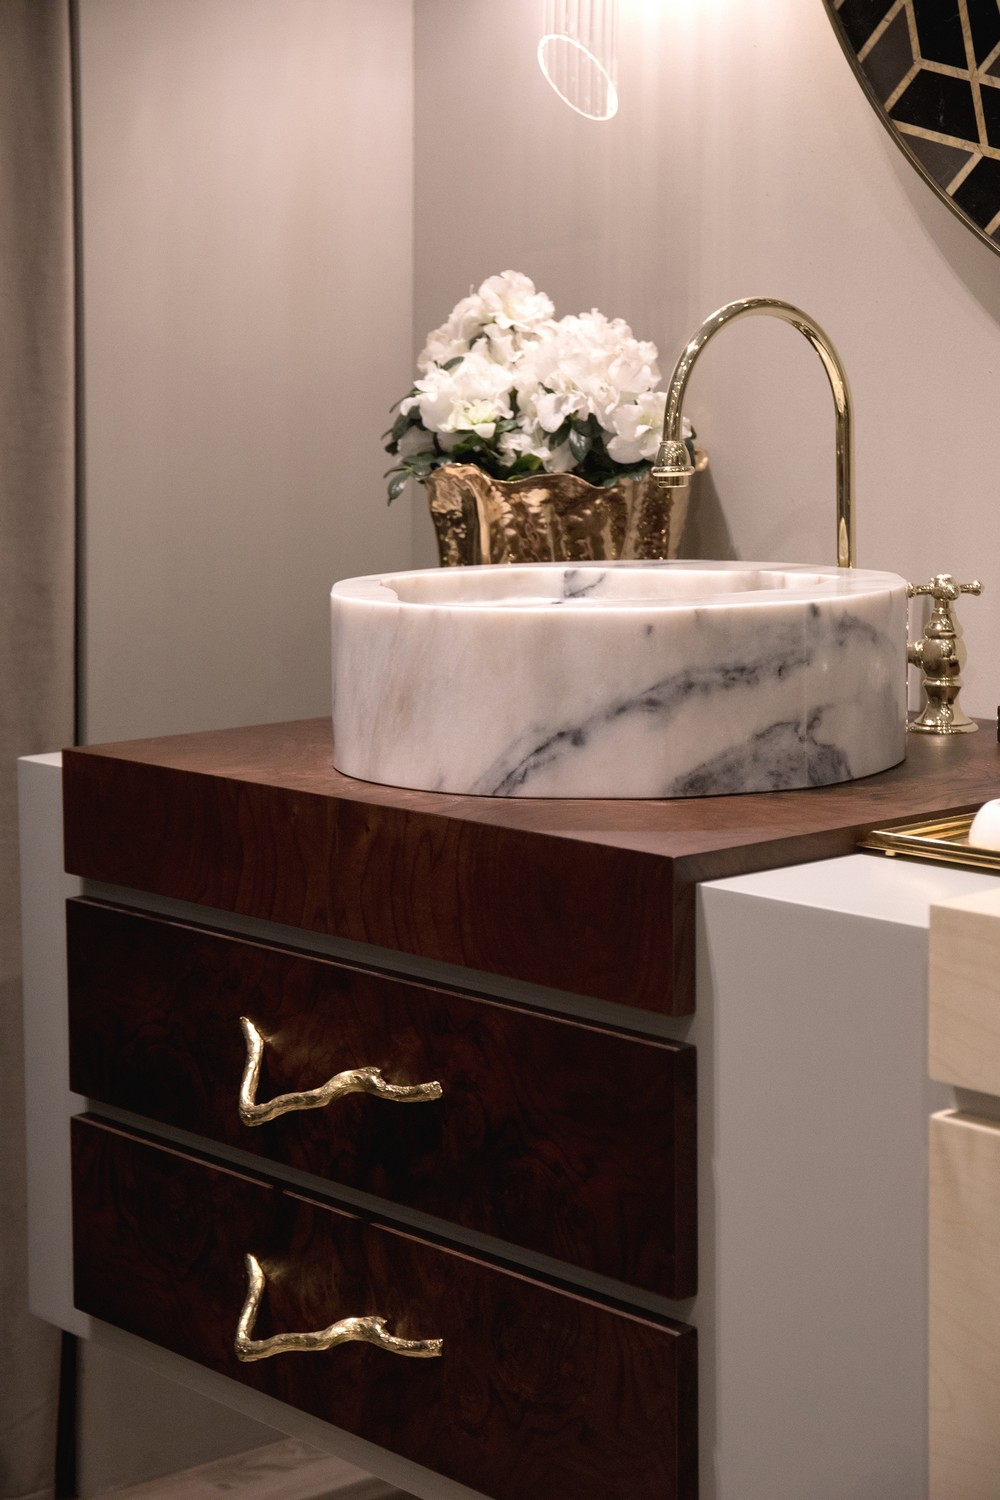 Luxury Bathrooms How to Adorn Your Cabinetry with Decorative Hardware luxury bathrooms Luxury Bathrooms: How to Adorn Your Cabinetry with Decorative Hardware Luxury Bathrooms How to Adorn Your Cabinetry with Decorative Hardware